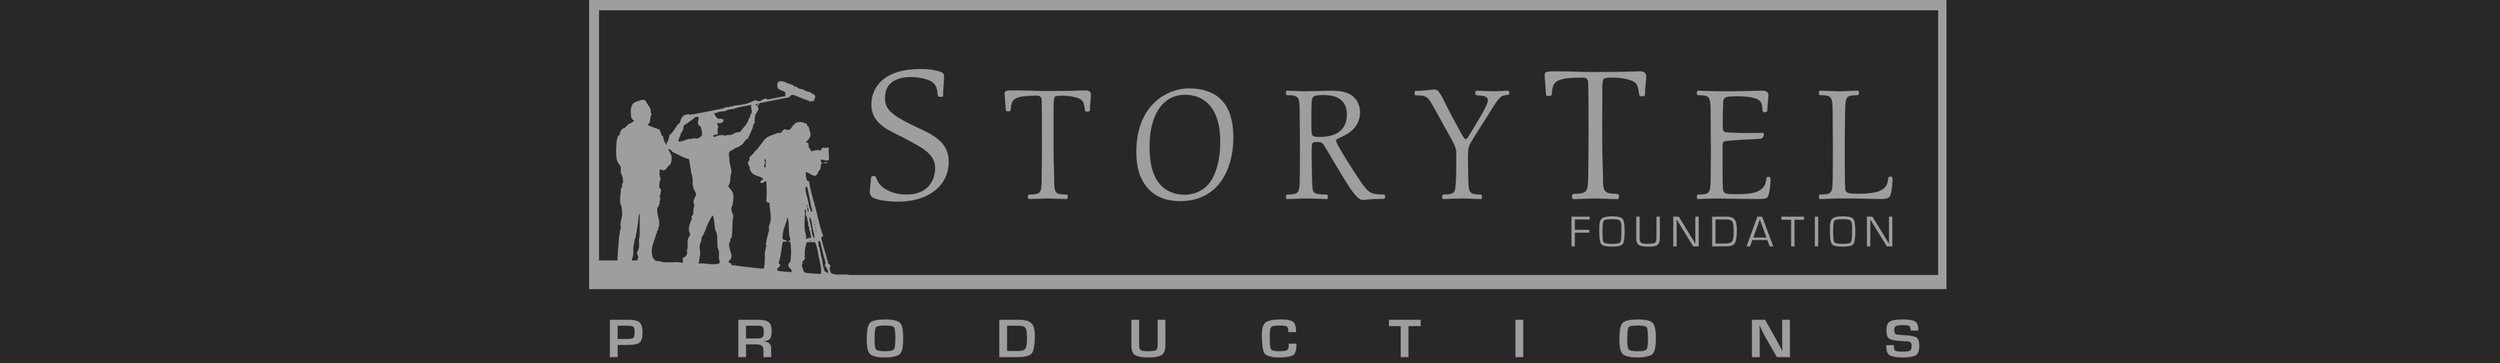 storytel-productions-bg.jpg